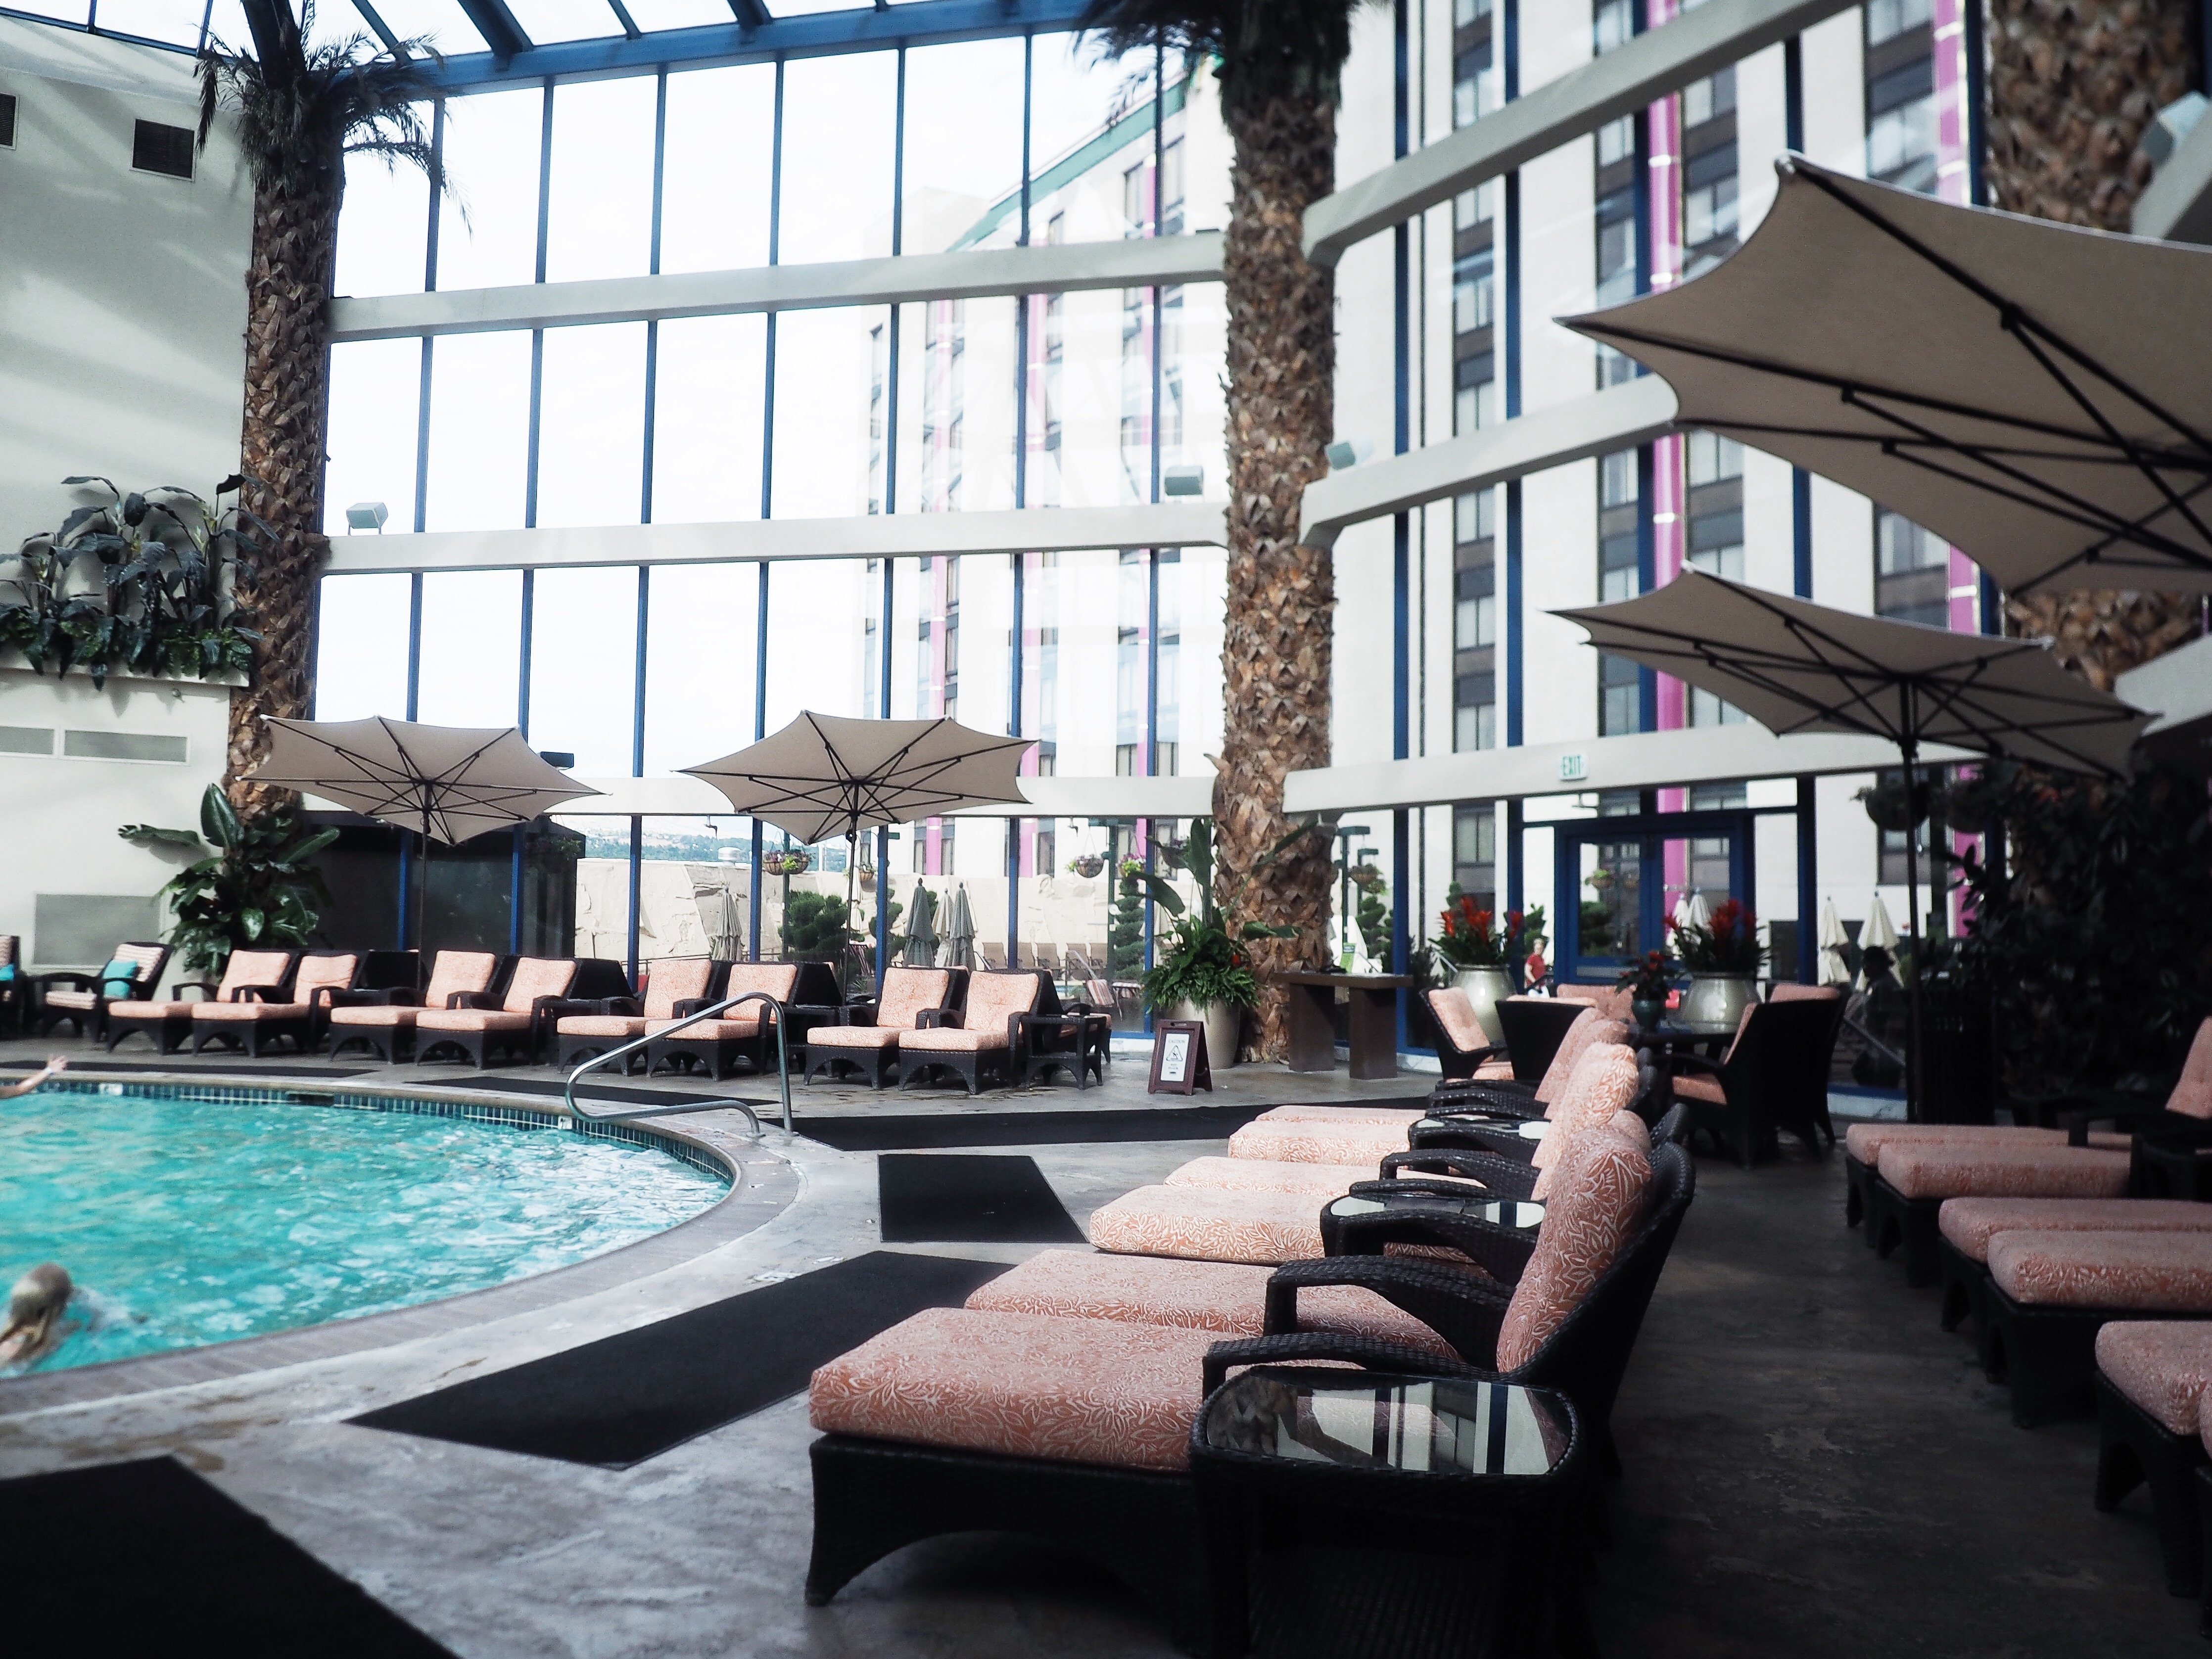 Spend a weekend in Reno's Atlantis Casino with Kelsey from Blondes & Bagels!